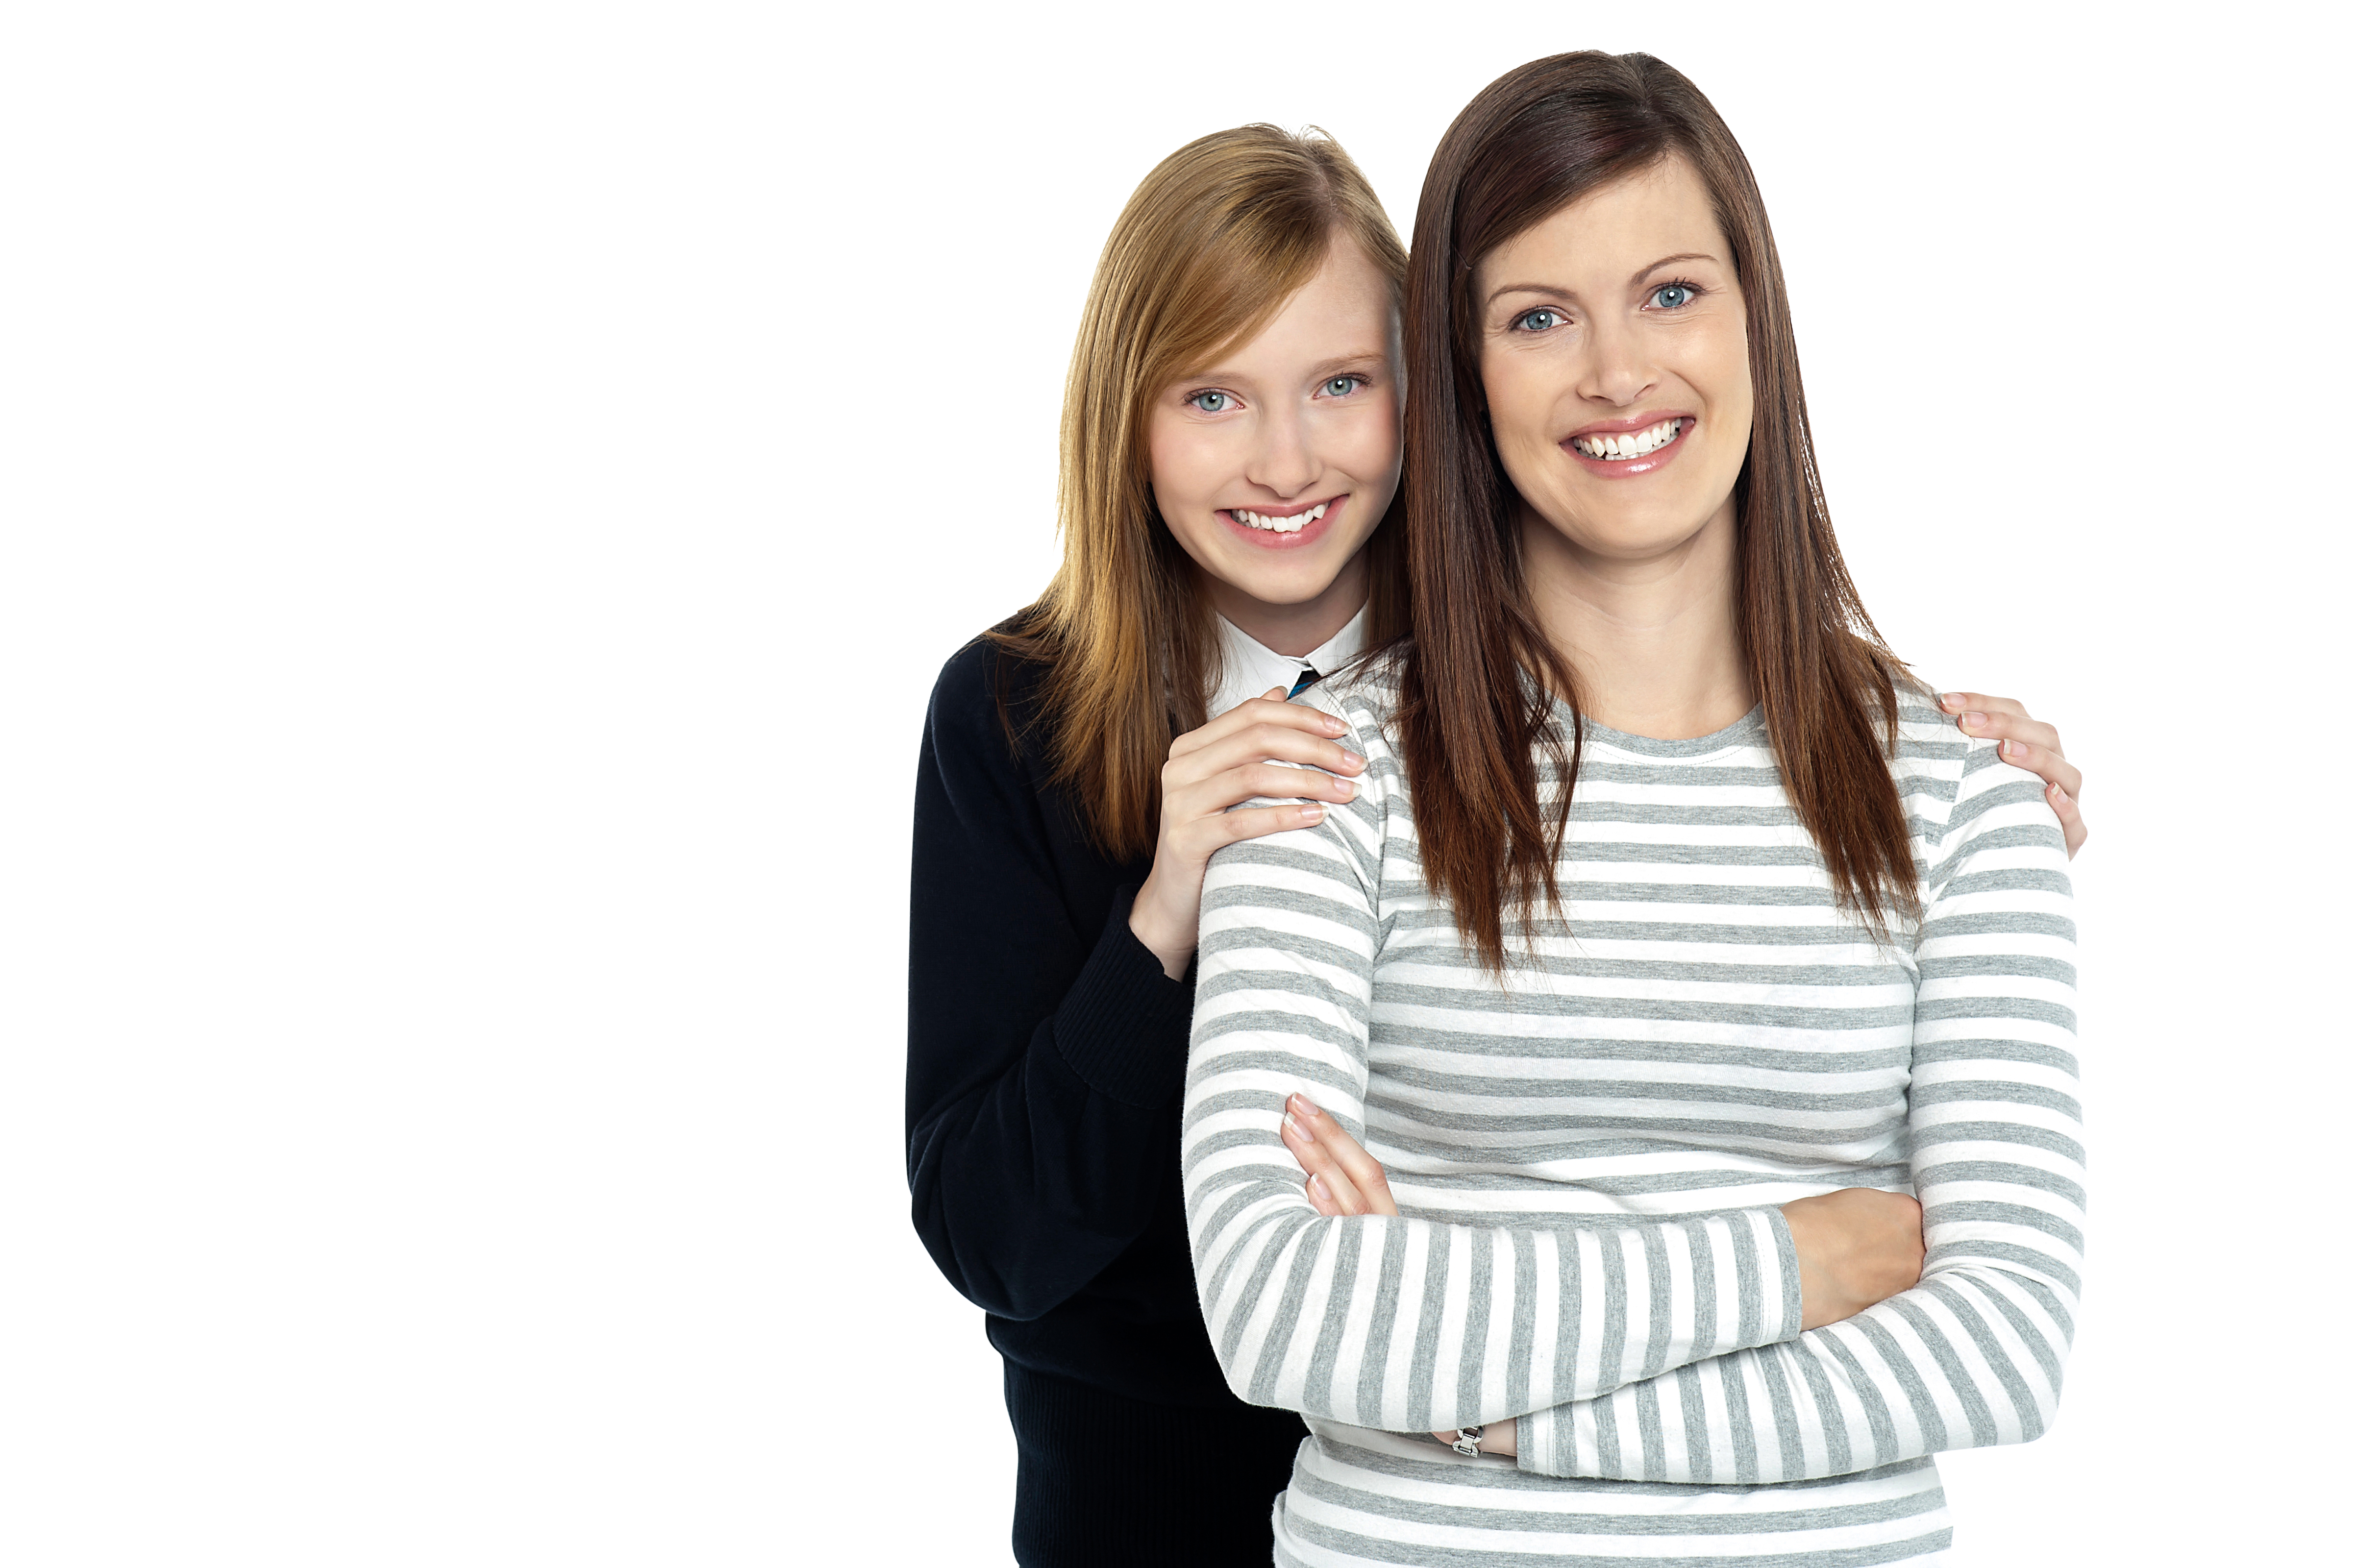 Stock people png. Happy girl image purepng